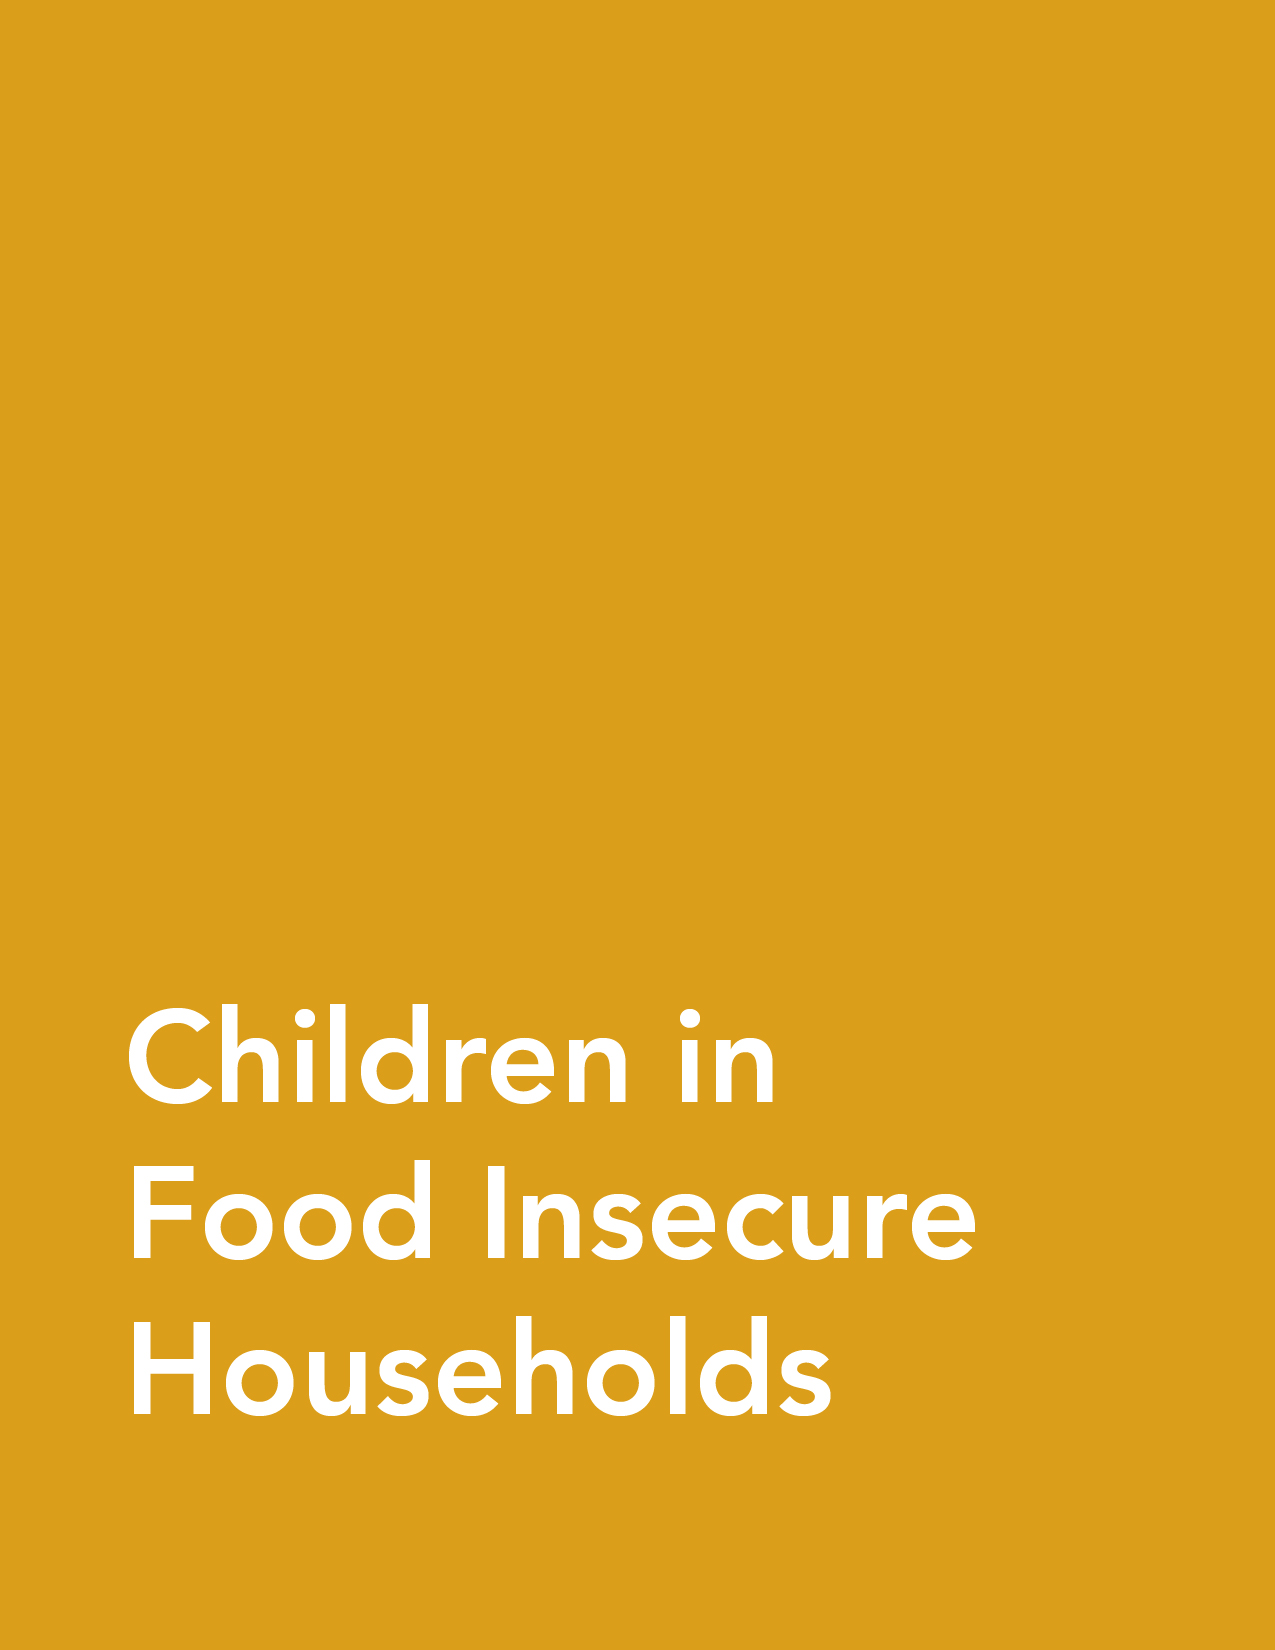 Fact Sheet: Children in Food Insecure Households